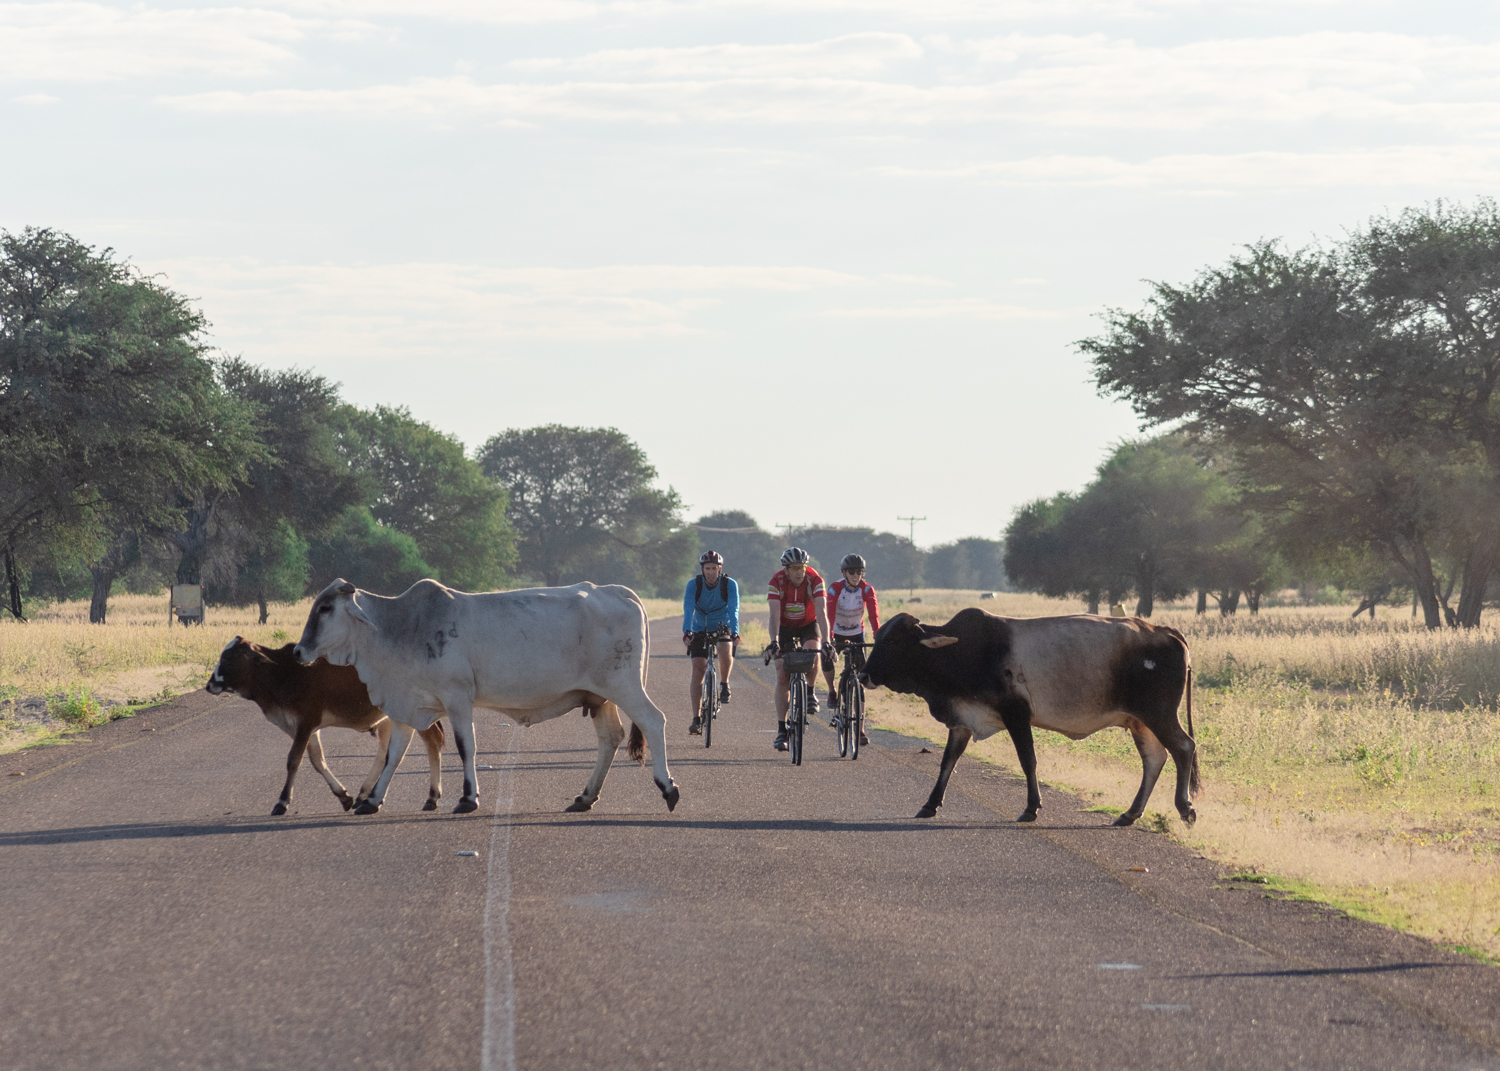 Cyclists interacted with livestock, seeing more donkeys, Brahman cattle, and horses as we progressed west towards Namibia. The herds wandered completely free through the bush, sometime with bells.